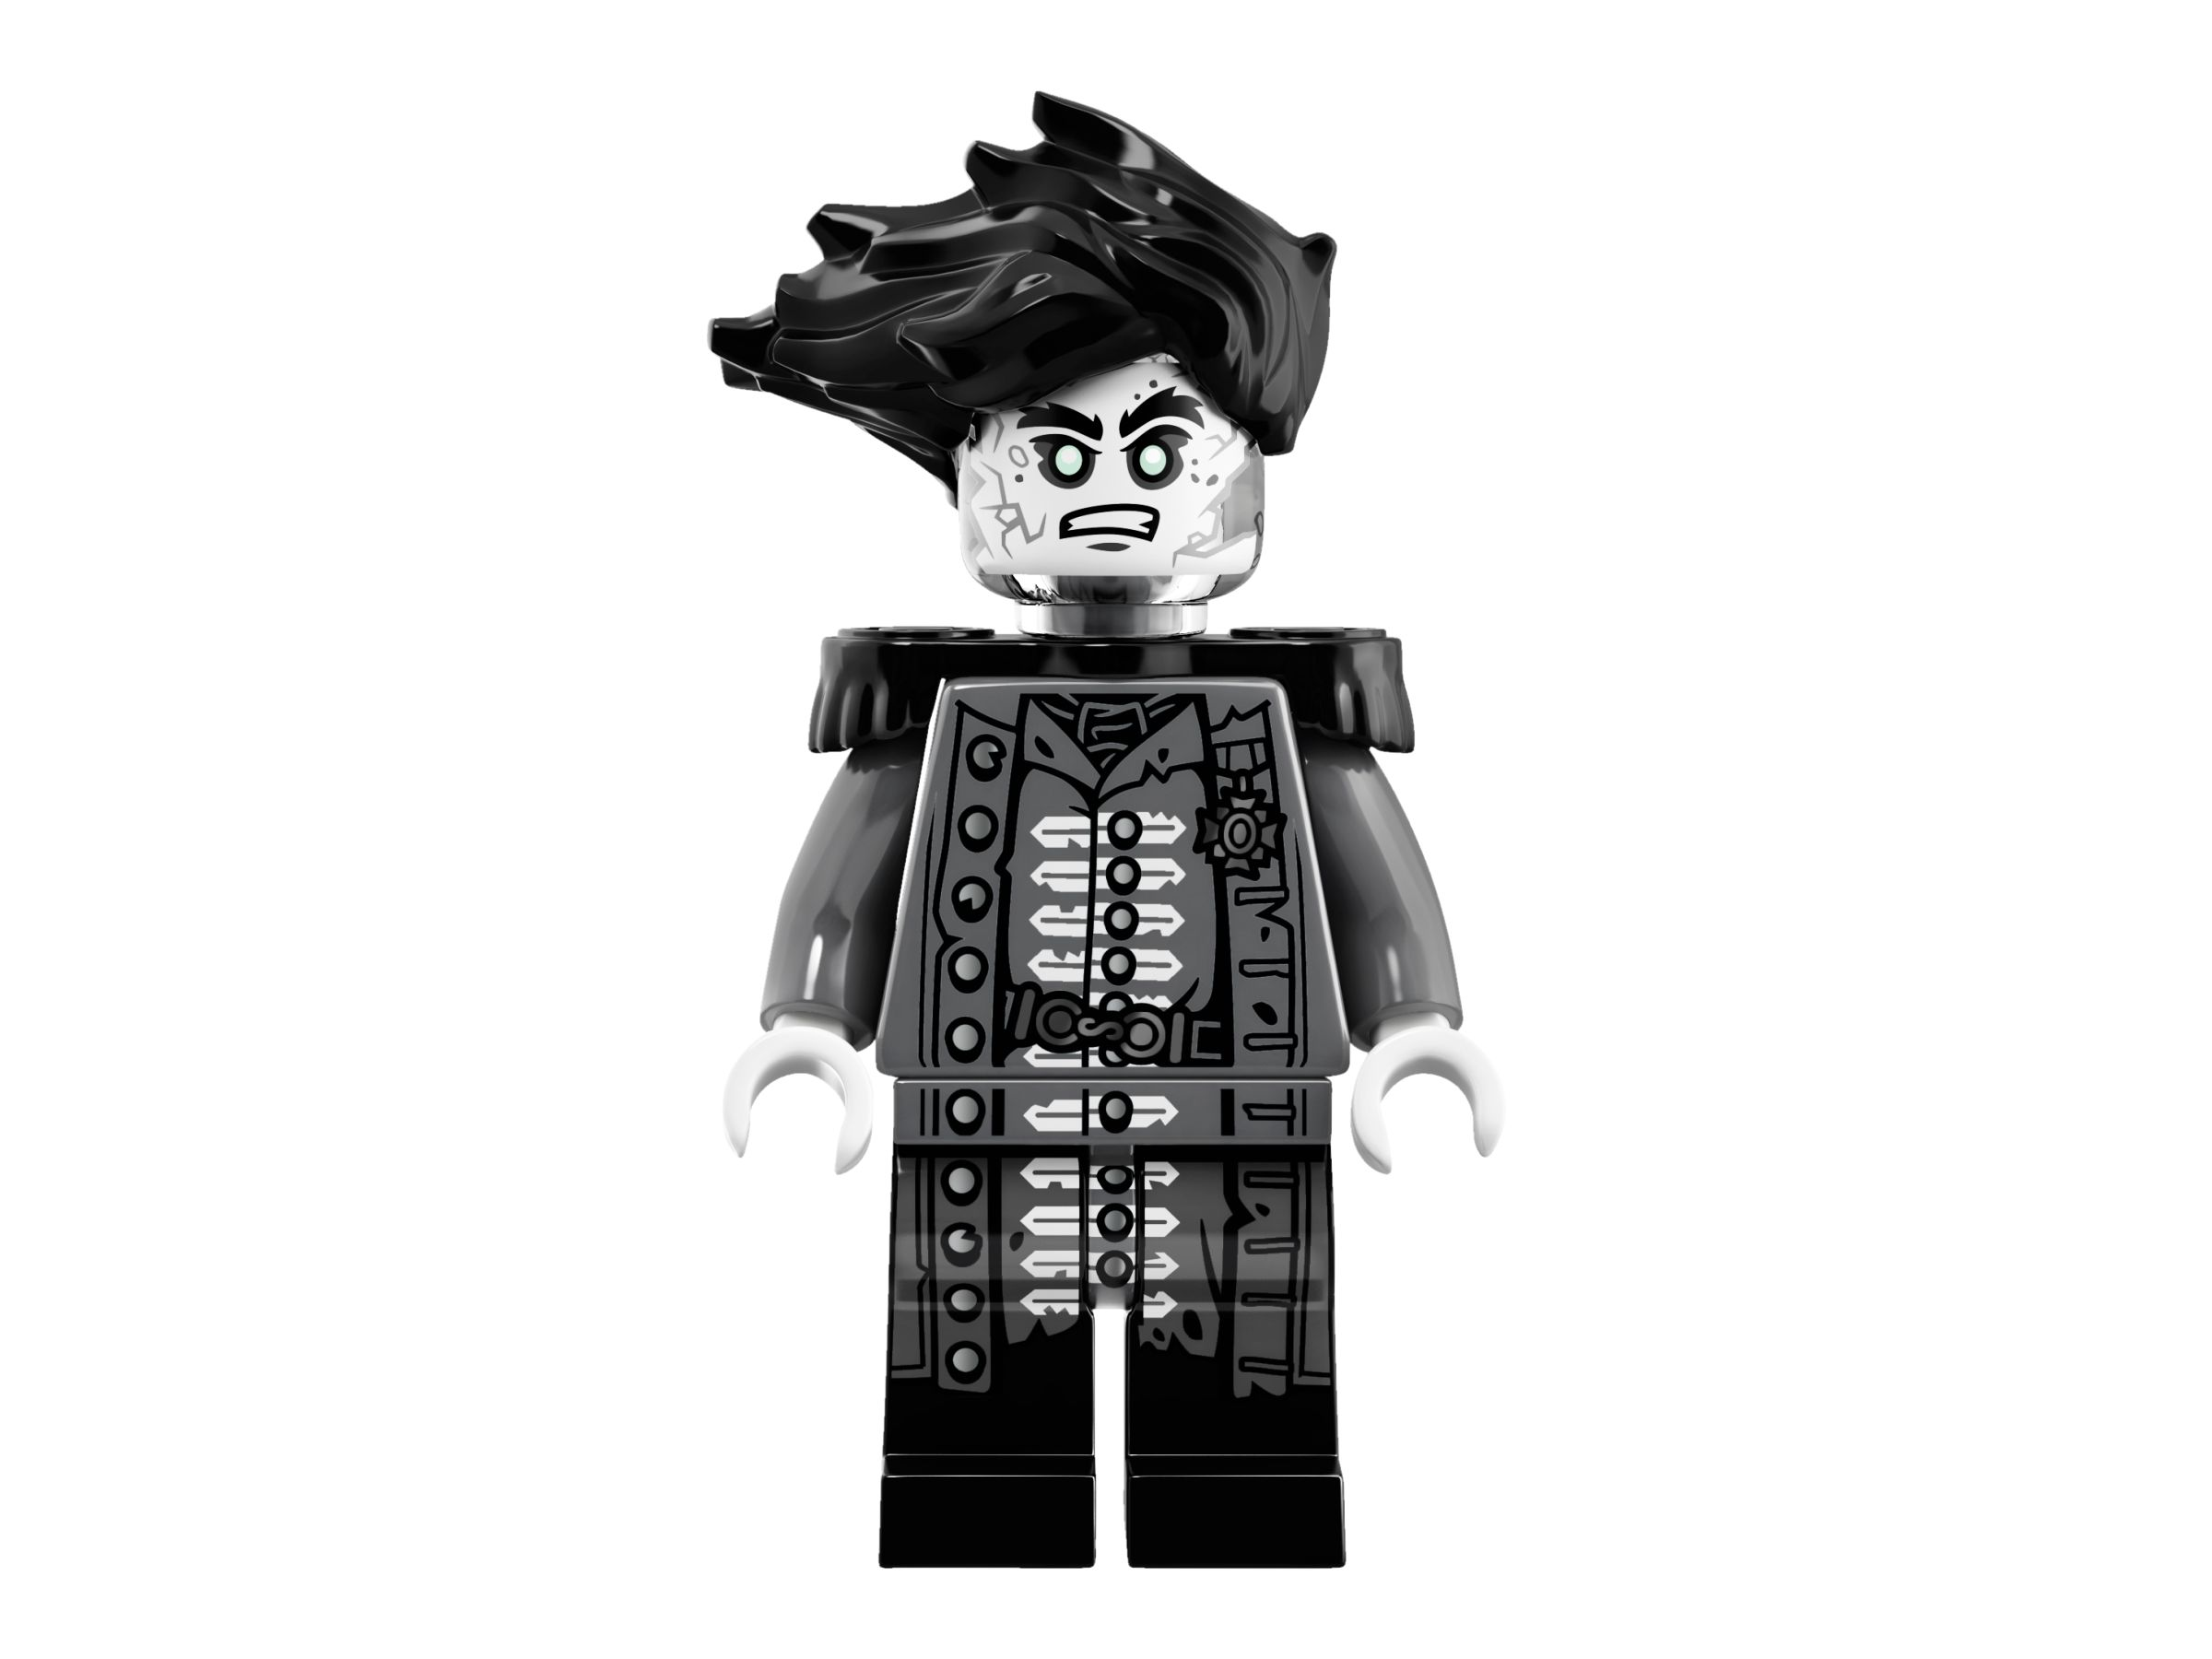 LEGO Advanced Models 71042 Silent Mary LEGO_71042_alt10_Silent_Mary.jpg